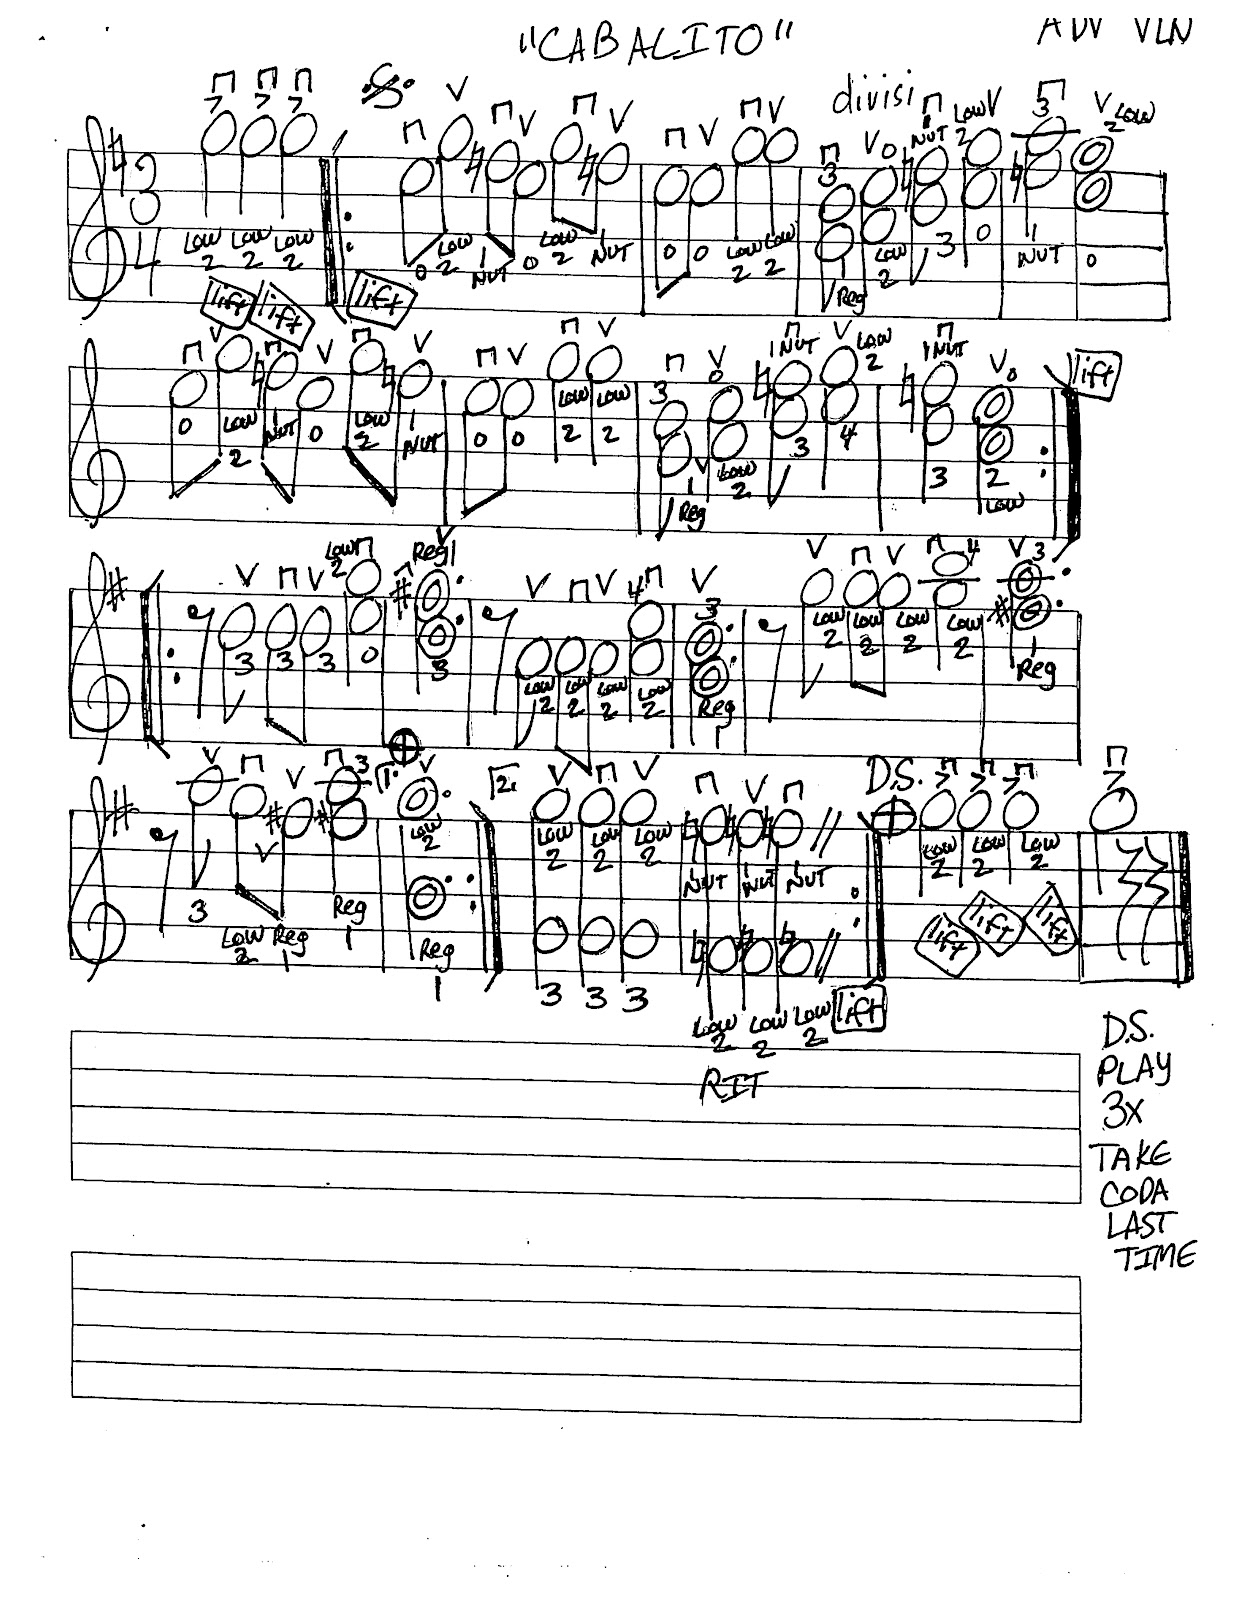 Miss Jacobson's Music: CABALITO MUSIC WORKSHEETS